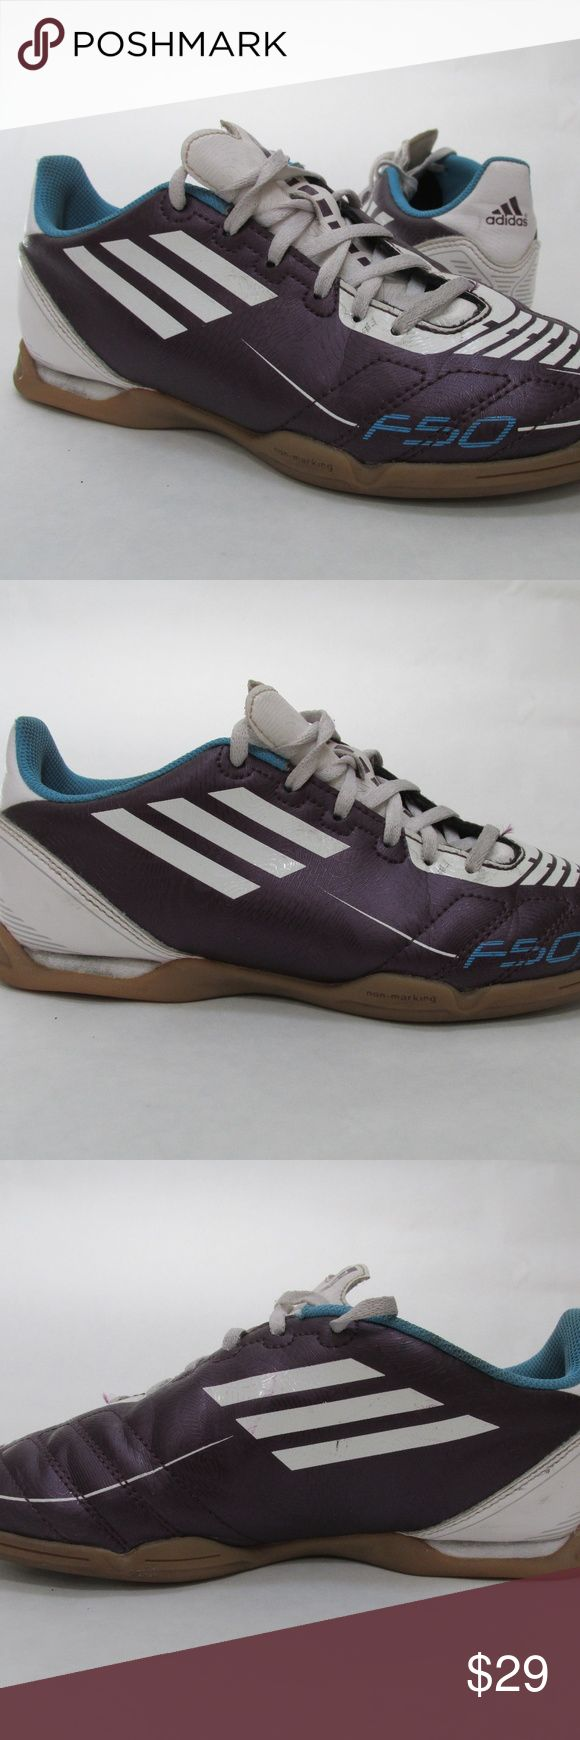 Adidas F-50 F50 Indoor Turf Soccer Cleats Shoes Adidas Purple White Blue F-50 F50 Indoor Turf Soccer Cleats Shoes Youth Size 4  Used only one season. Im great condition. See photos for the exact cleat you will receive. adidas Shoes Sneakers